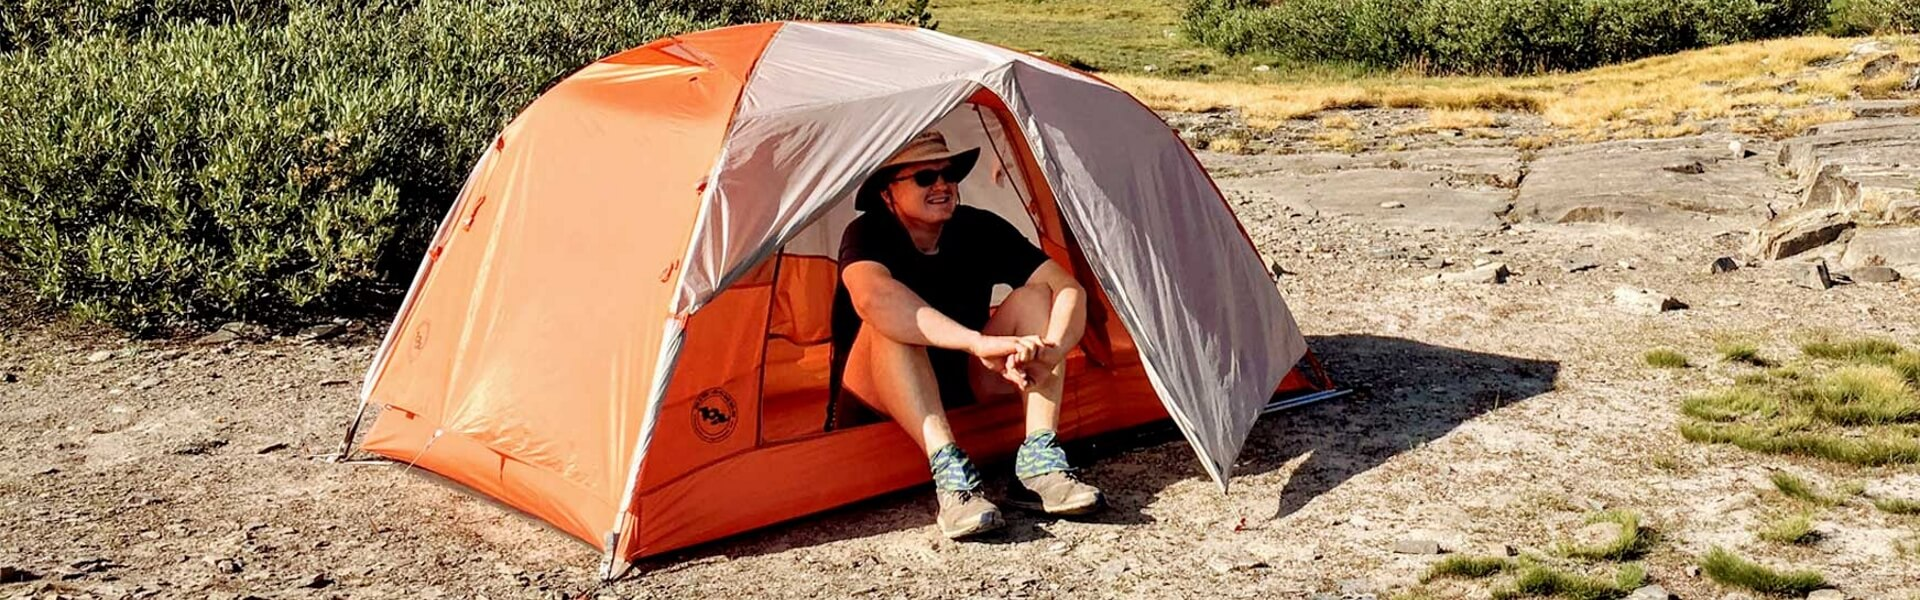 Best Backpacking Tents – Top Rated and Reviewed